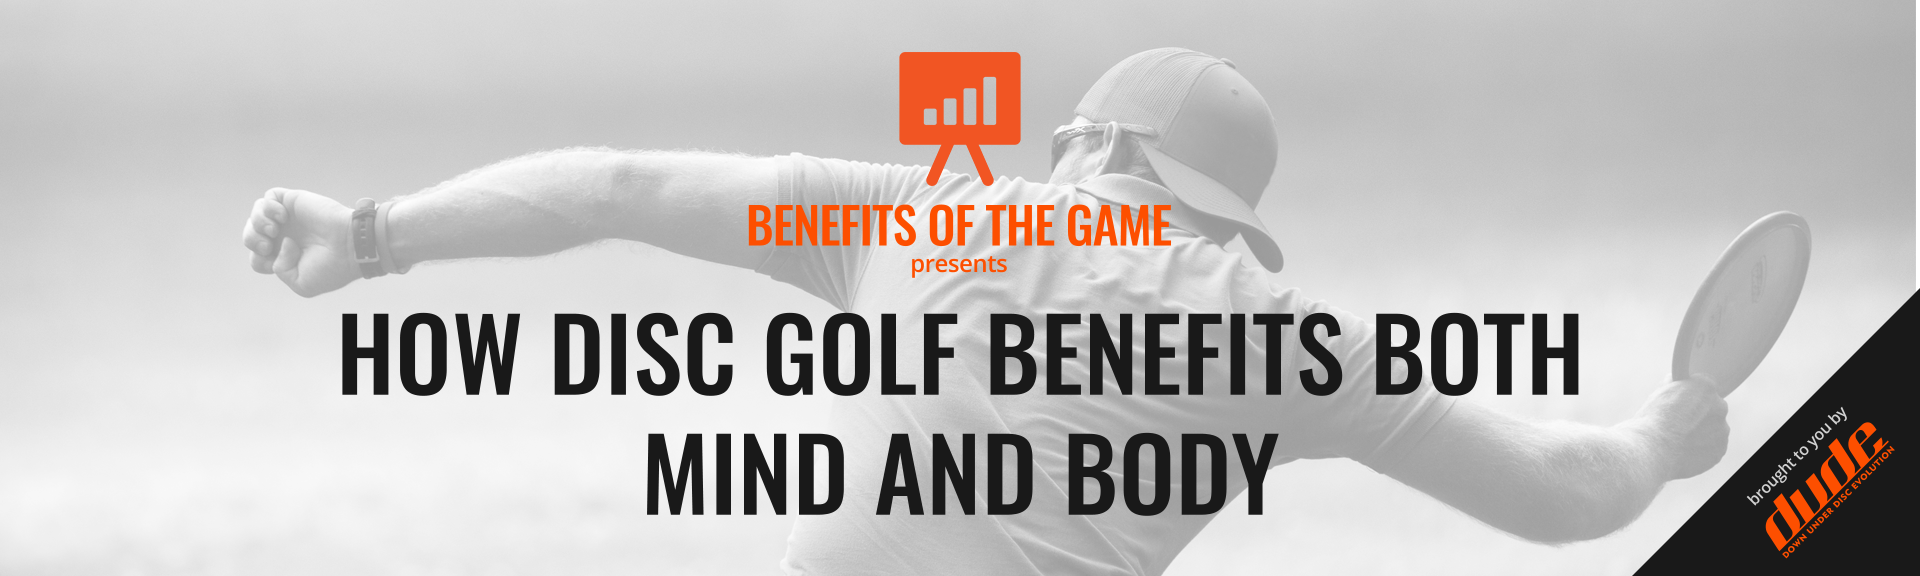 Dude Clothing Benefits of the Game Disc Golf benefits the mind and body